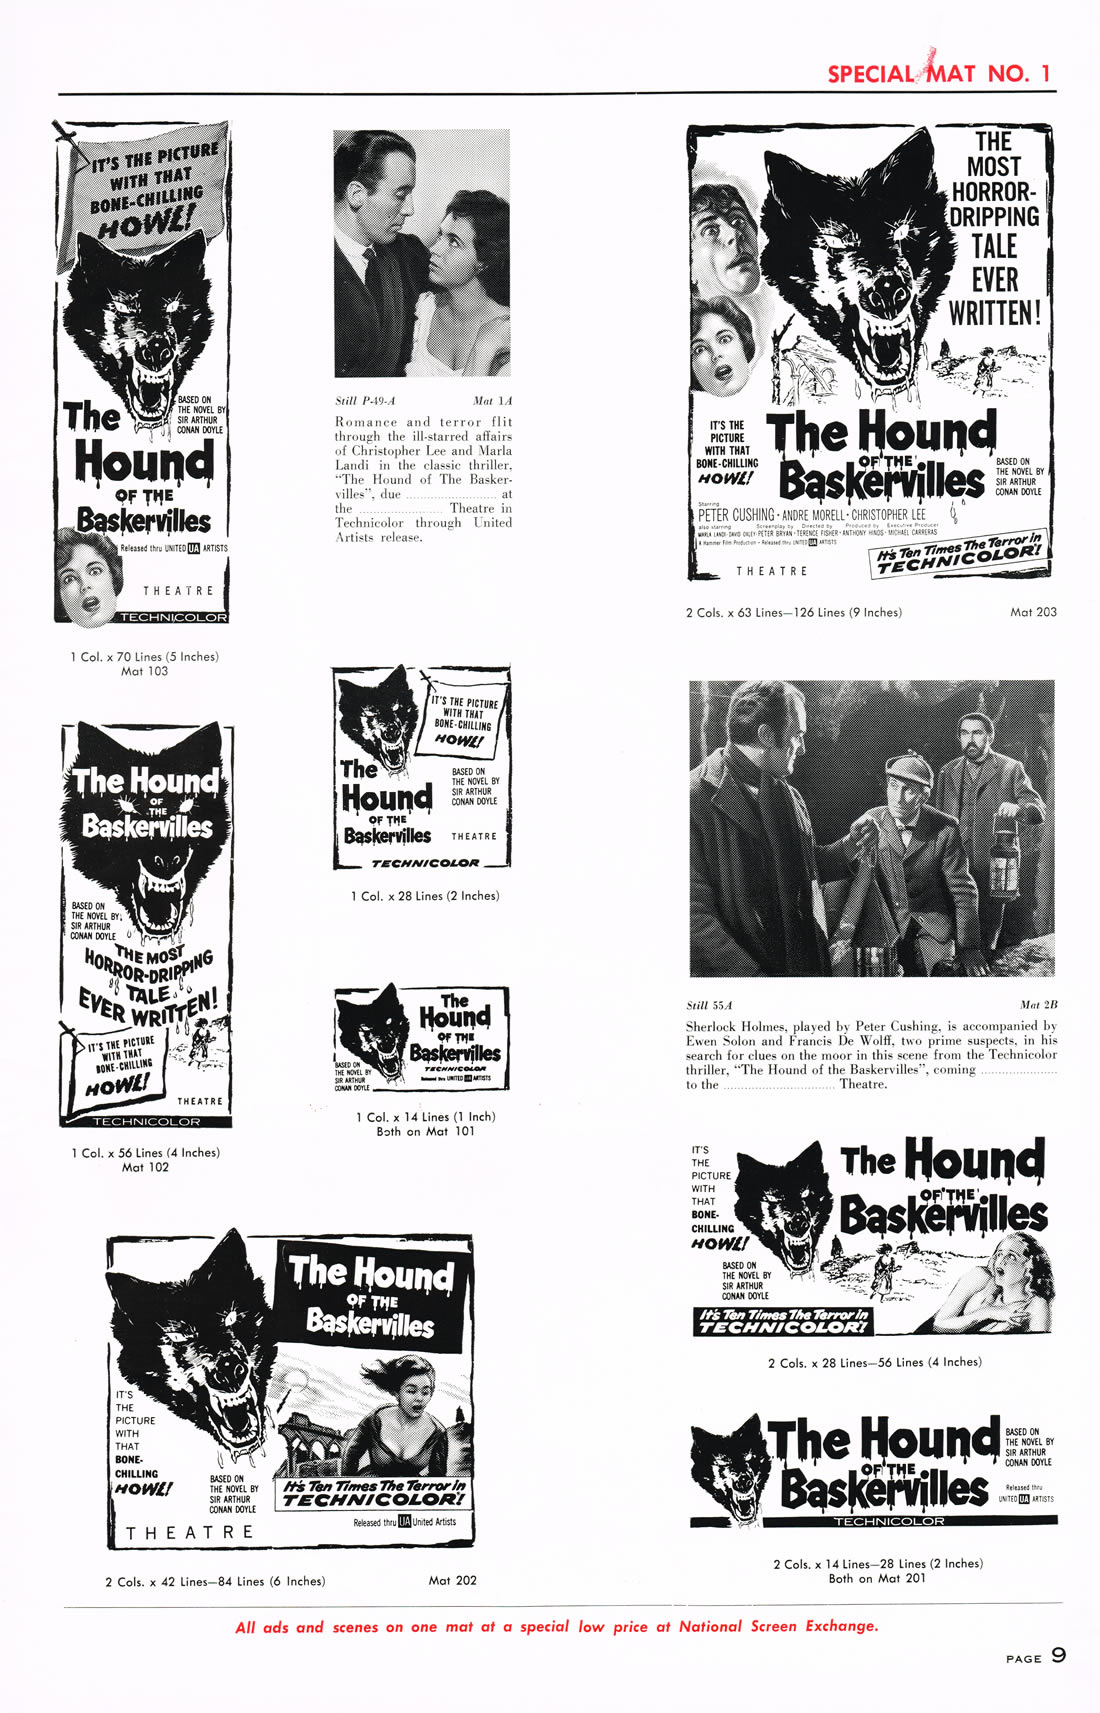 The Hound of the Baskervilles (1959) – The Visuals